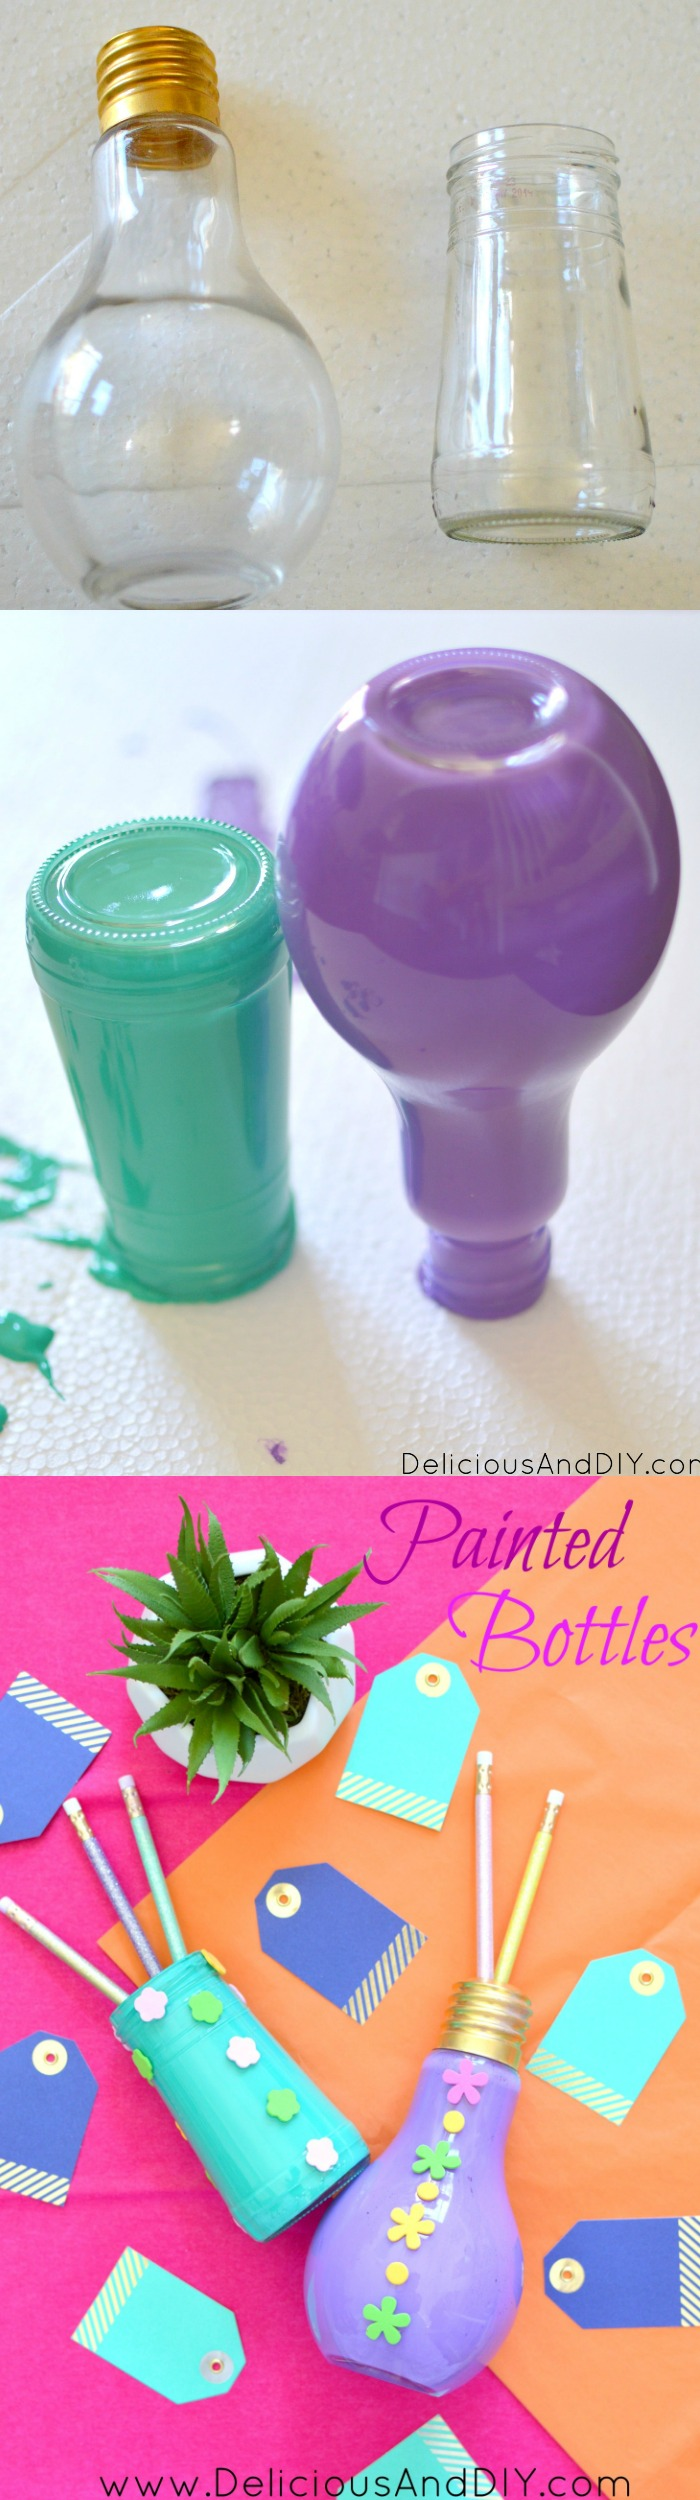 Recycle those empty bottles by this super simple Painted Bottle Technique| Create gorgeous painted bottles| Recycled bottles| Upcycled bottles| Bottle Craft Ideas| Painted Bottles DIY